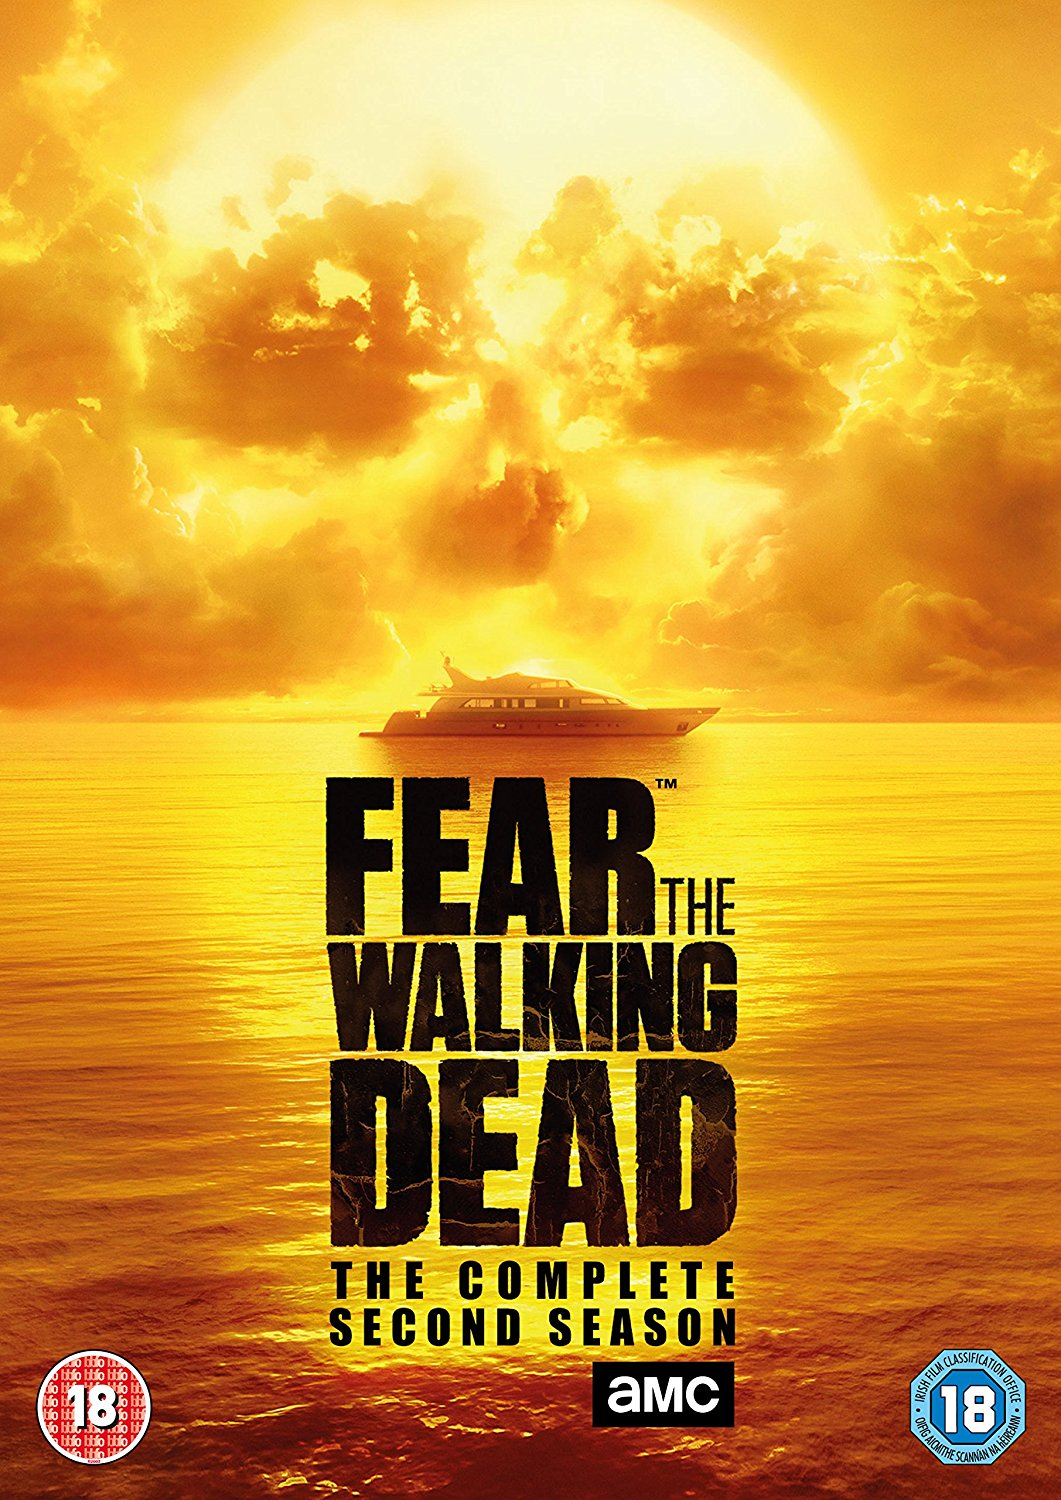 Fear.The.Walking.Dead.Sezon.2